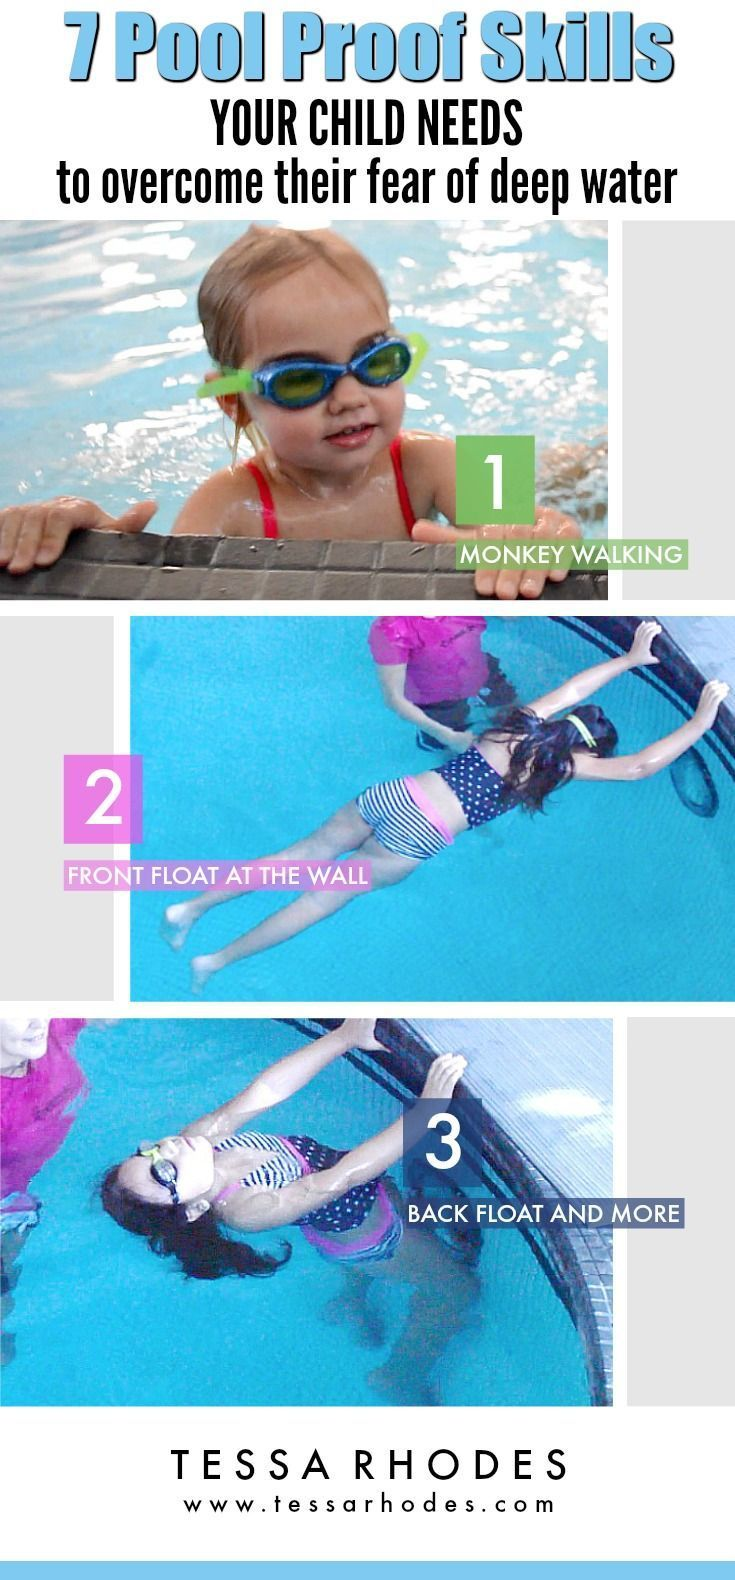 If Your Child Is Completely Comfortable In Shallow Water Then She Is Ready To Conquer Her Fear Swimming Lessons For Kids Teach Kids To Swim How To Swim Faster